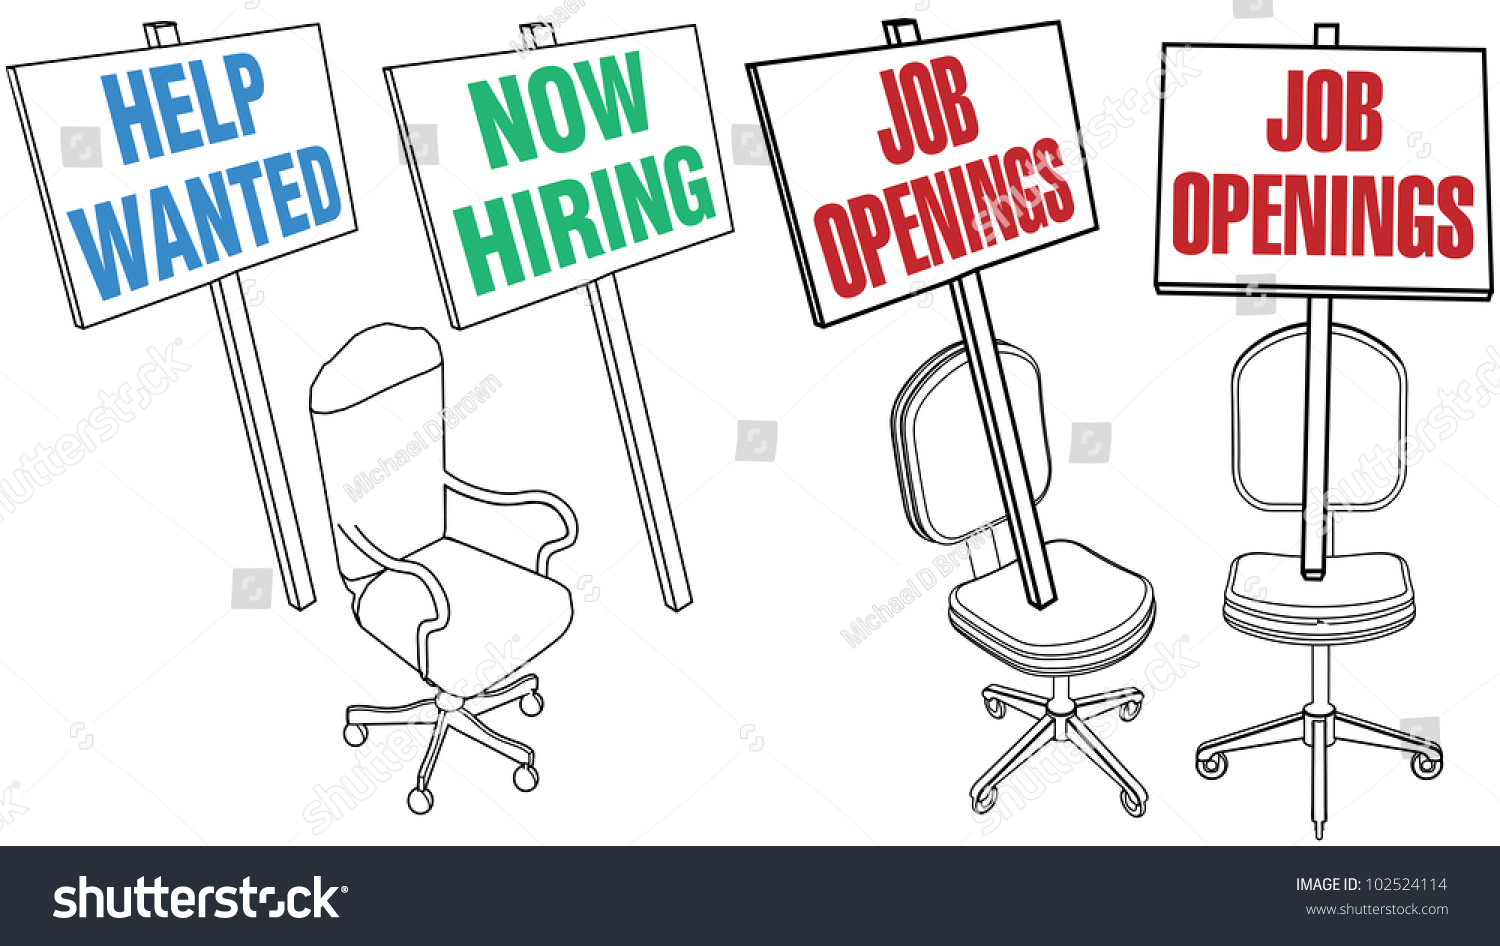 job hiring sign empty office chair stock vector   - job hiring sign empty office chair icons for human resources web pages andnewspaper classified ads